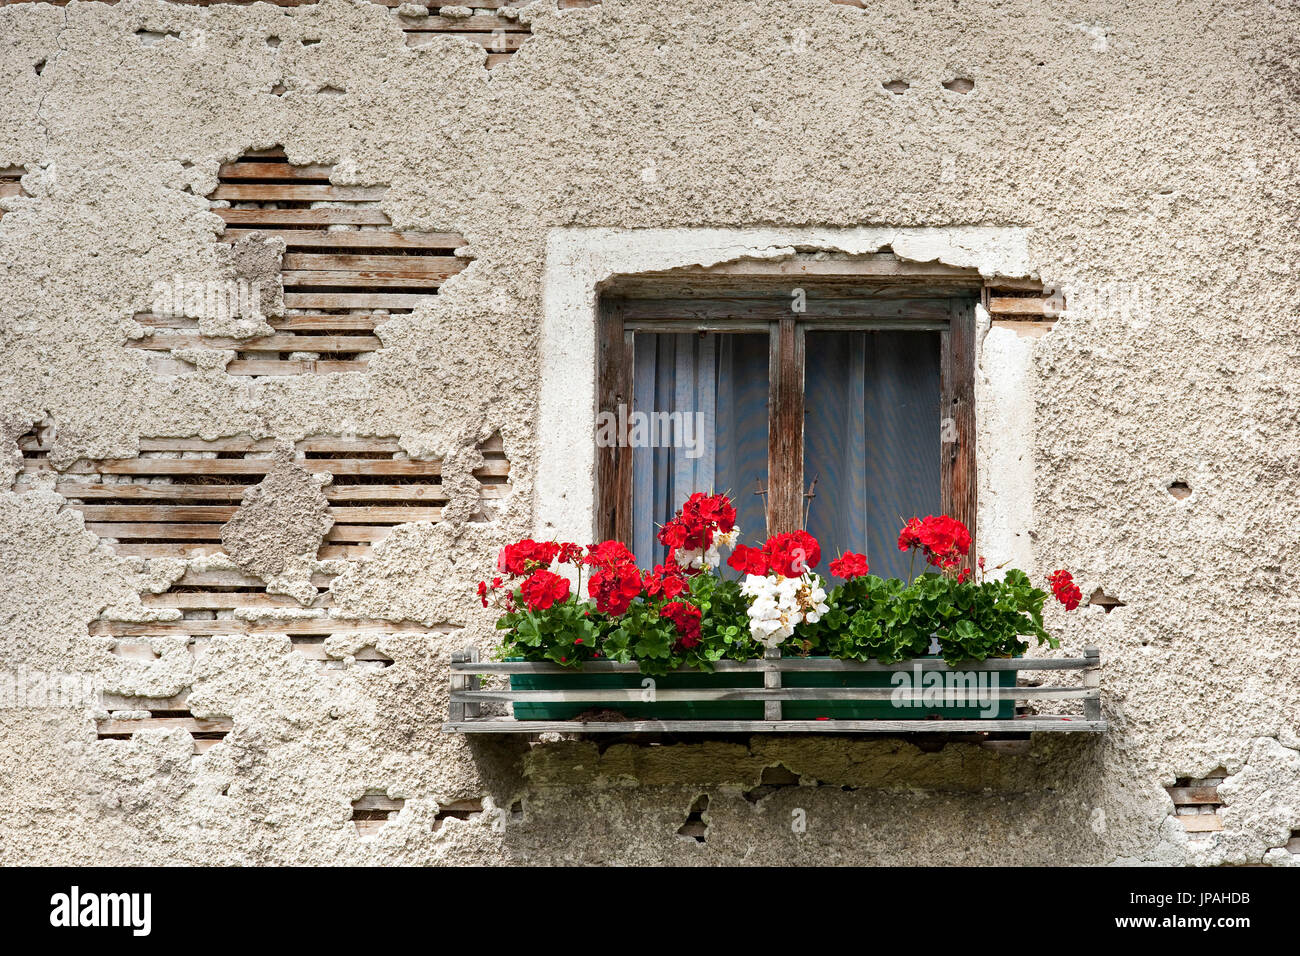 Window with window box and old broken wall. - Stock Image